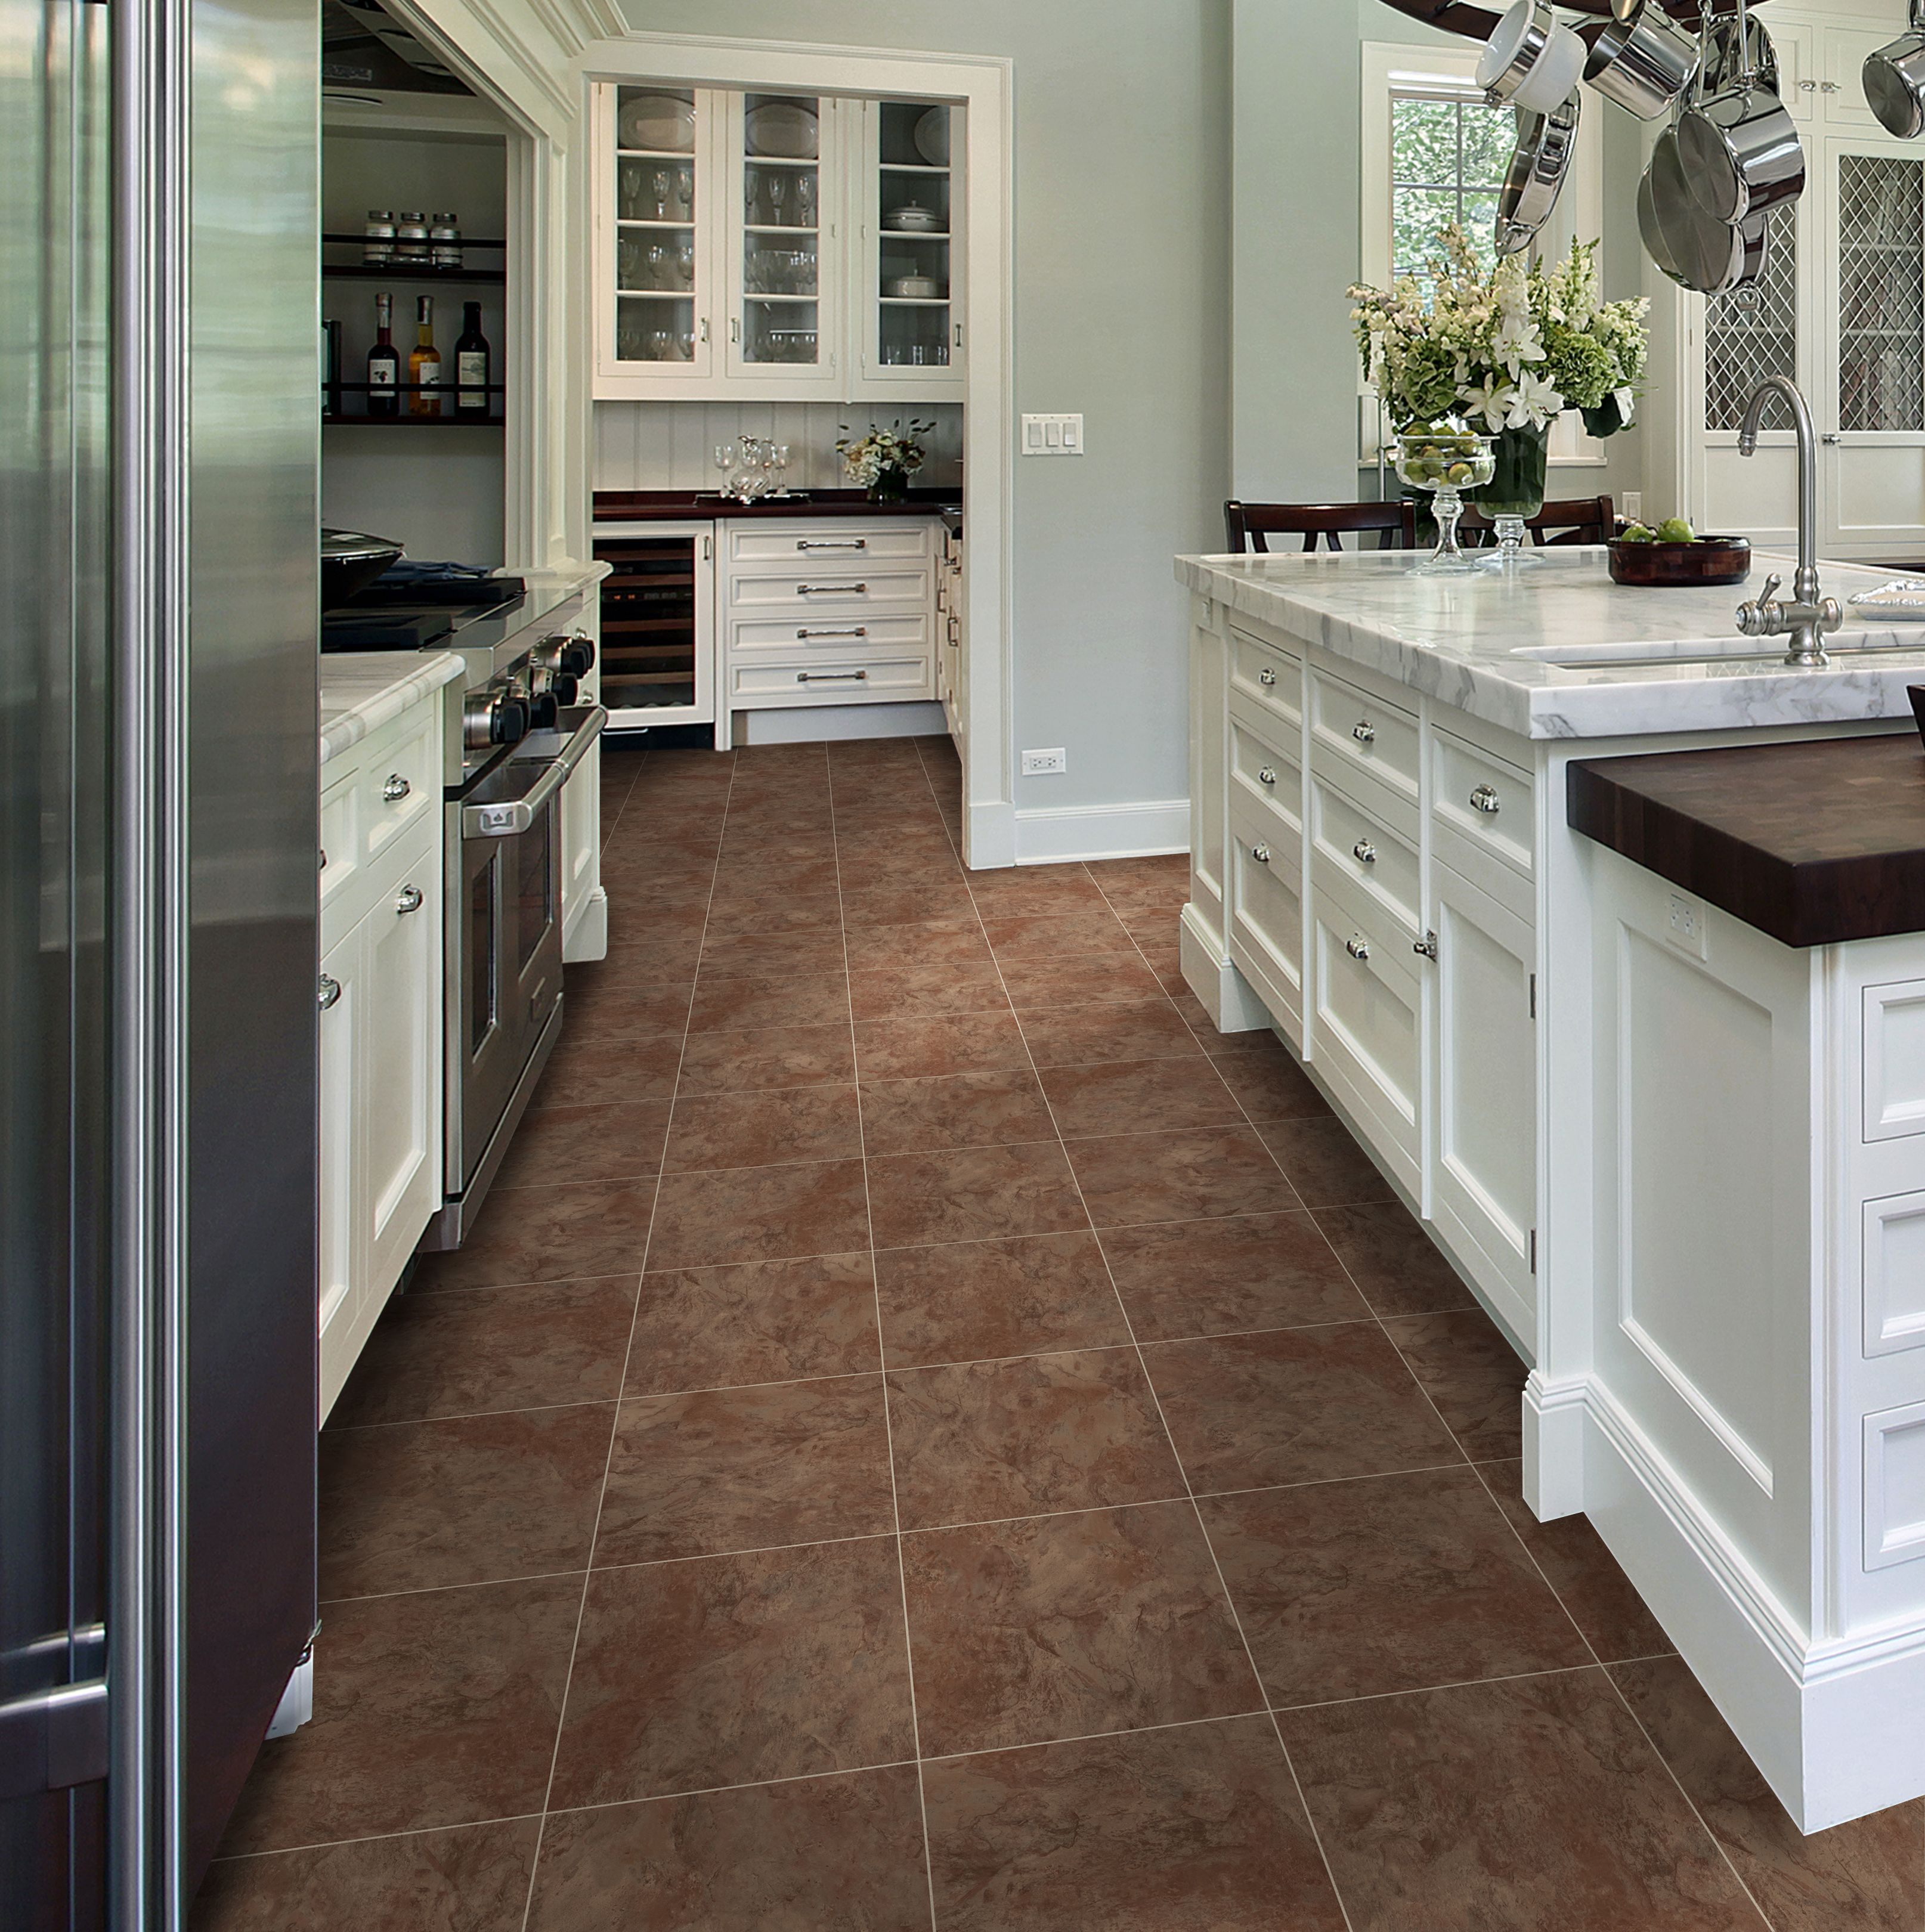 Canyon Tiles Are Much More Than Just The Floor.